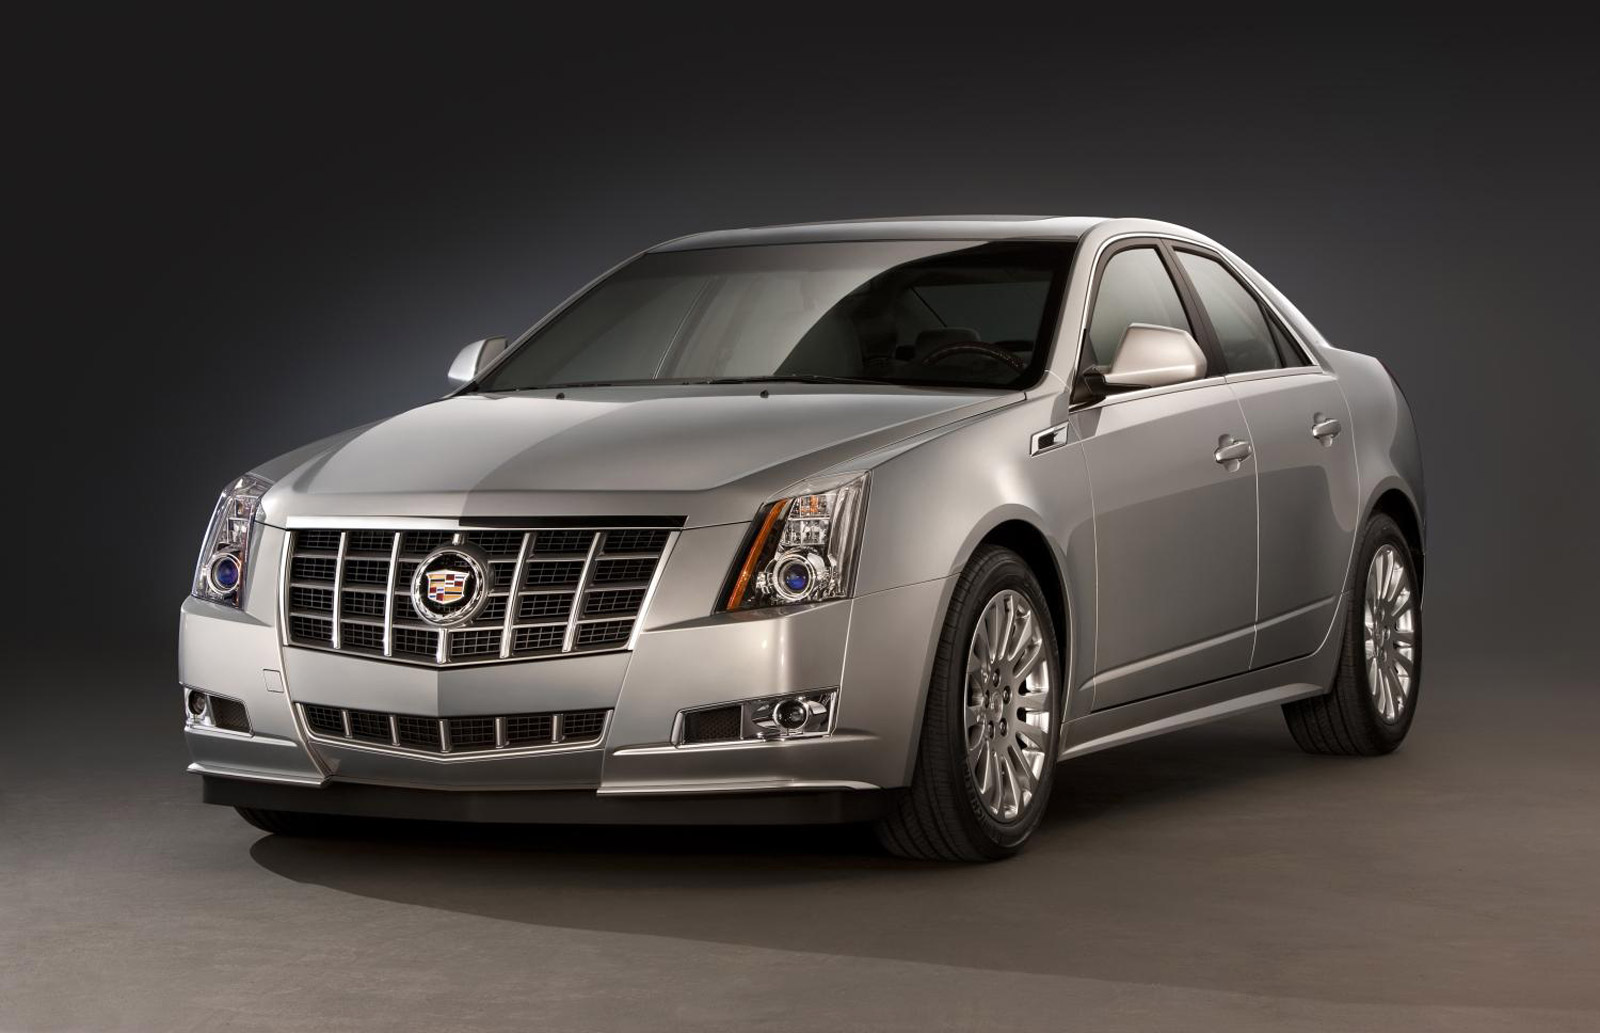 Jeep Dealers Cleveland >> GM Tells Used Car Dealers To Stop Selling 2003-13 Cadillac ...